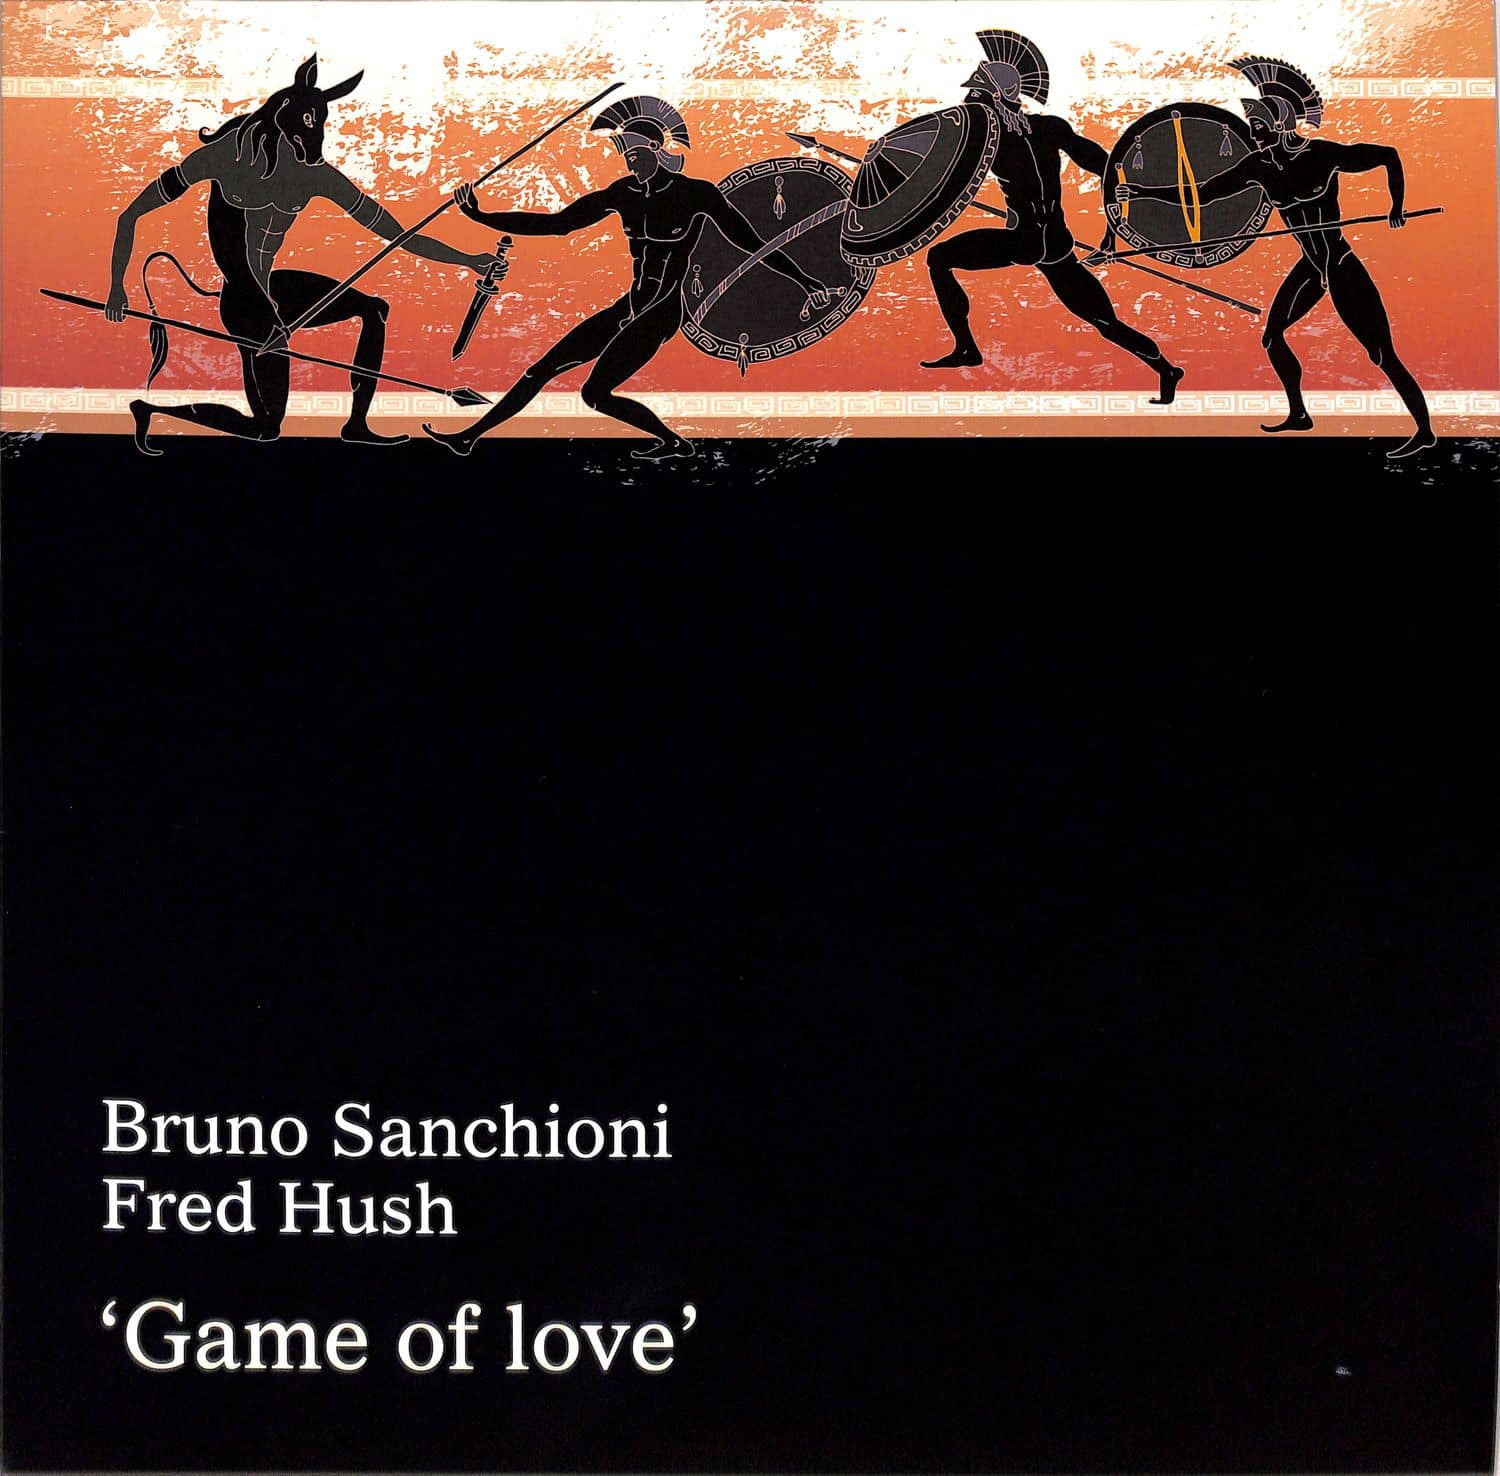 Bruno Sanchioni / Fred Hush - GAME OF LOVE